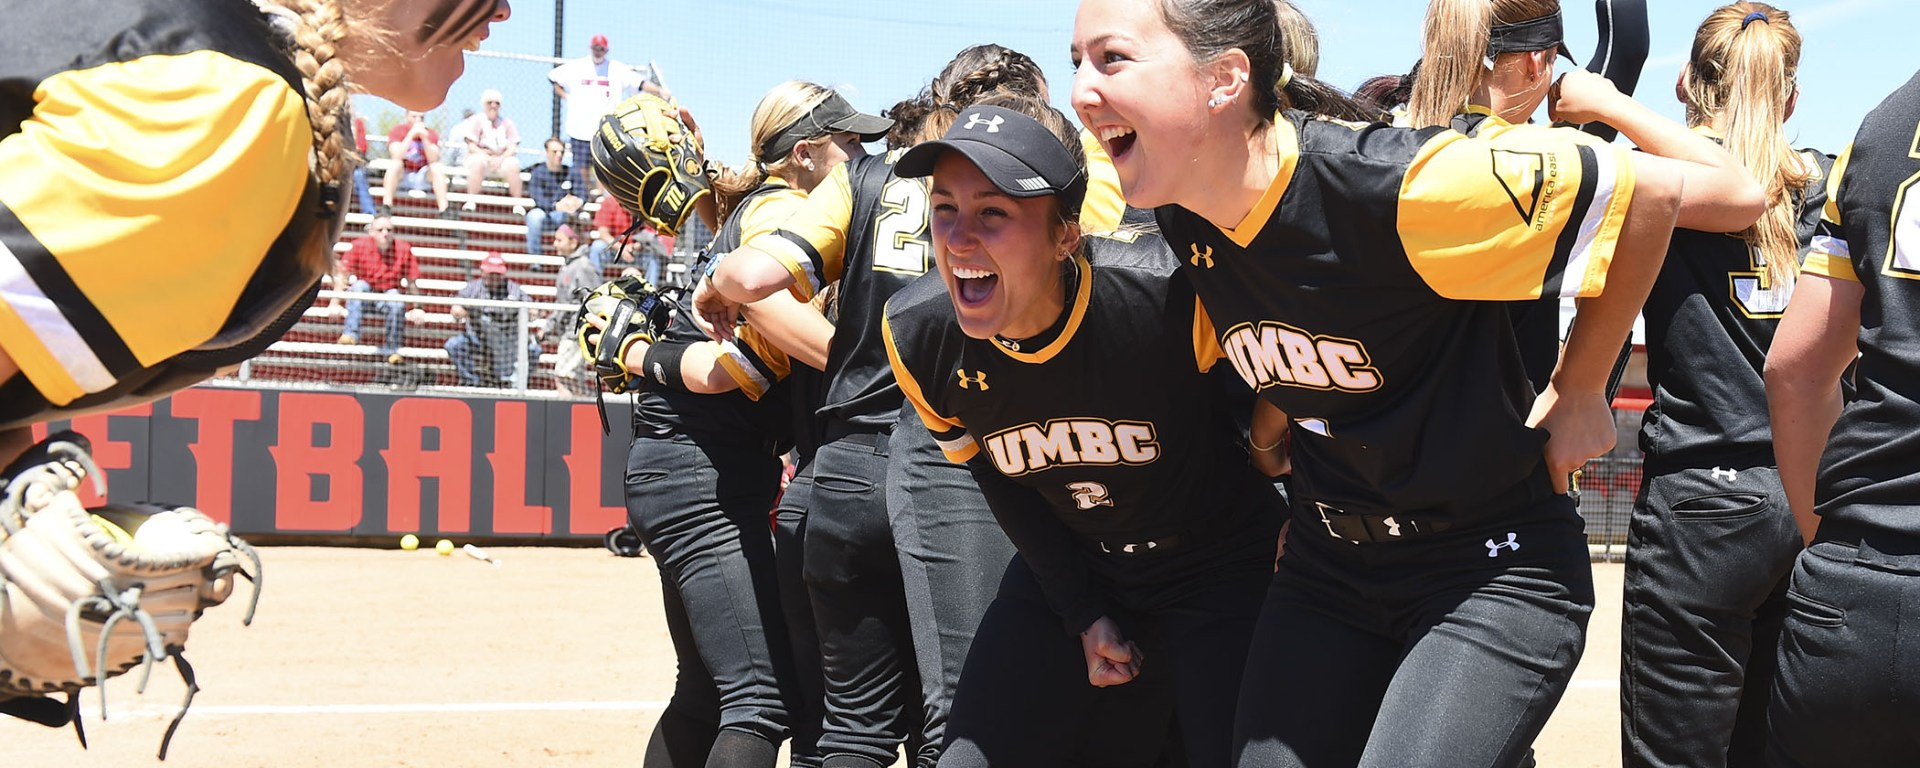 UMBC softball celebrates following the team's America East victory.